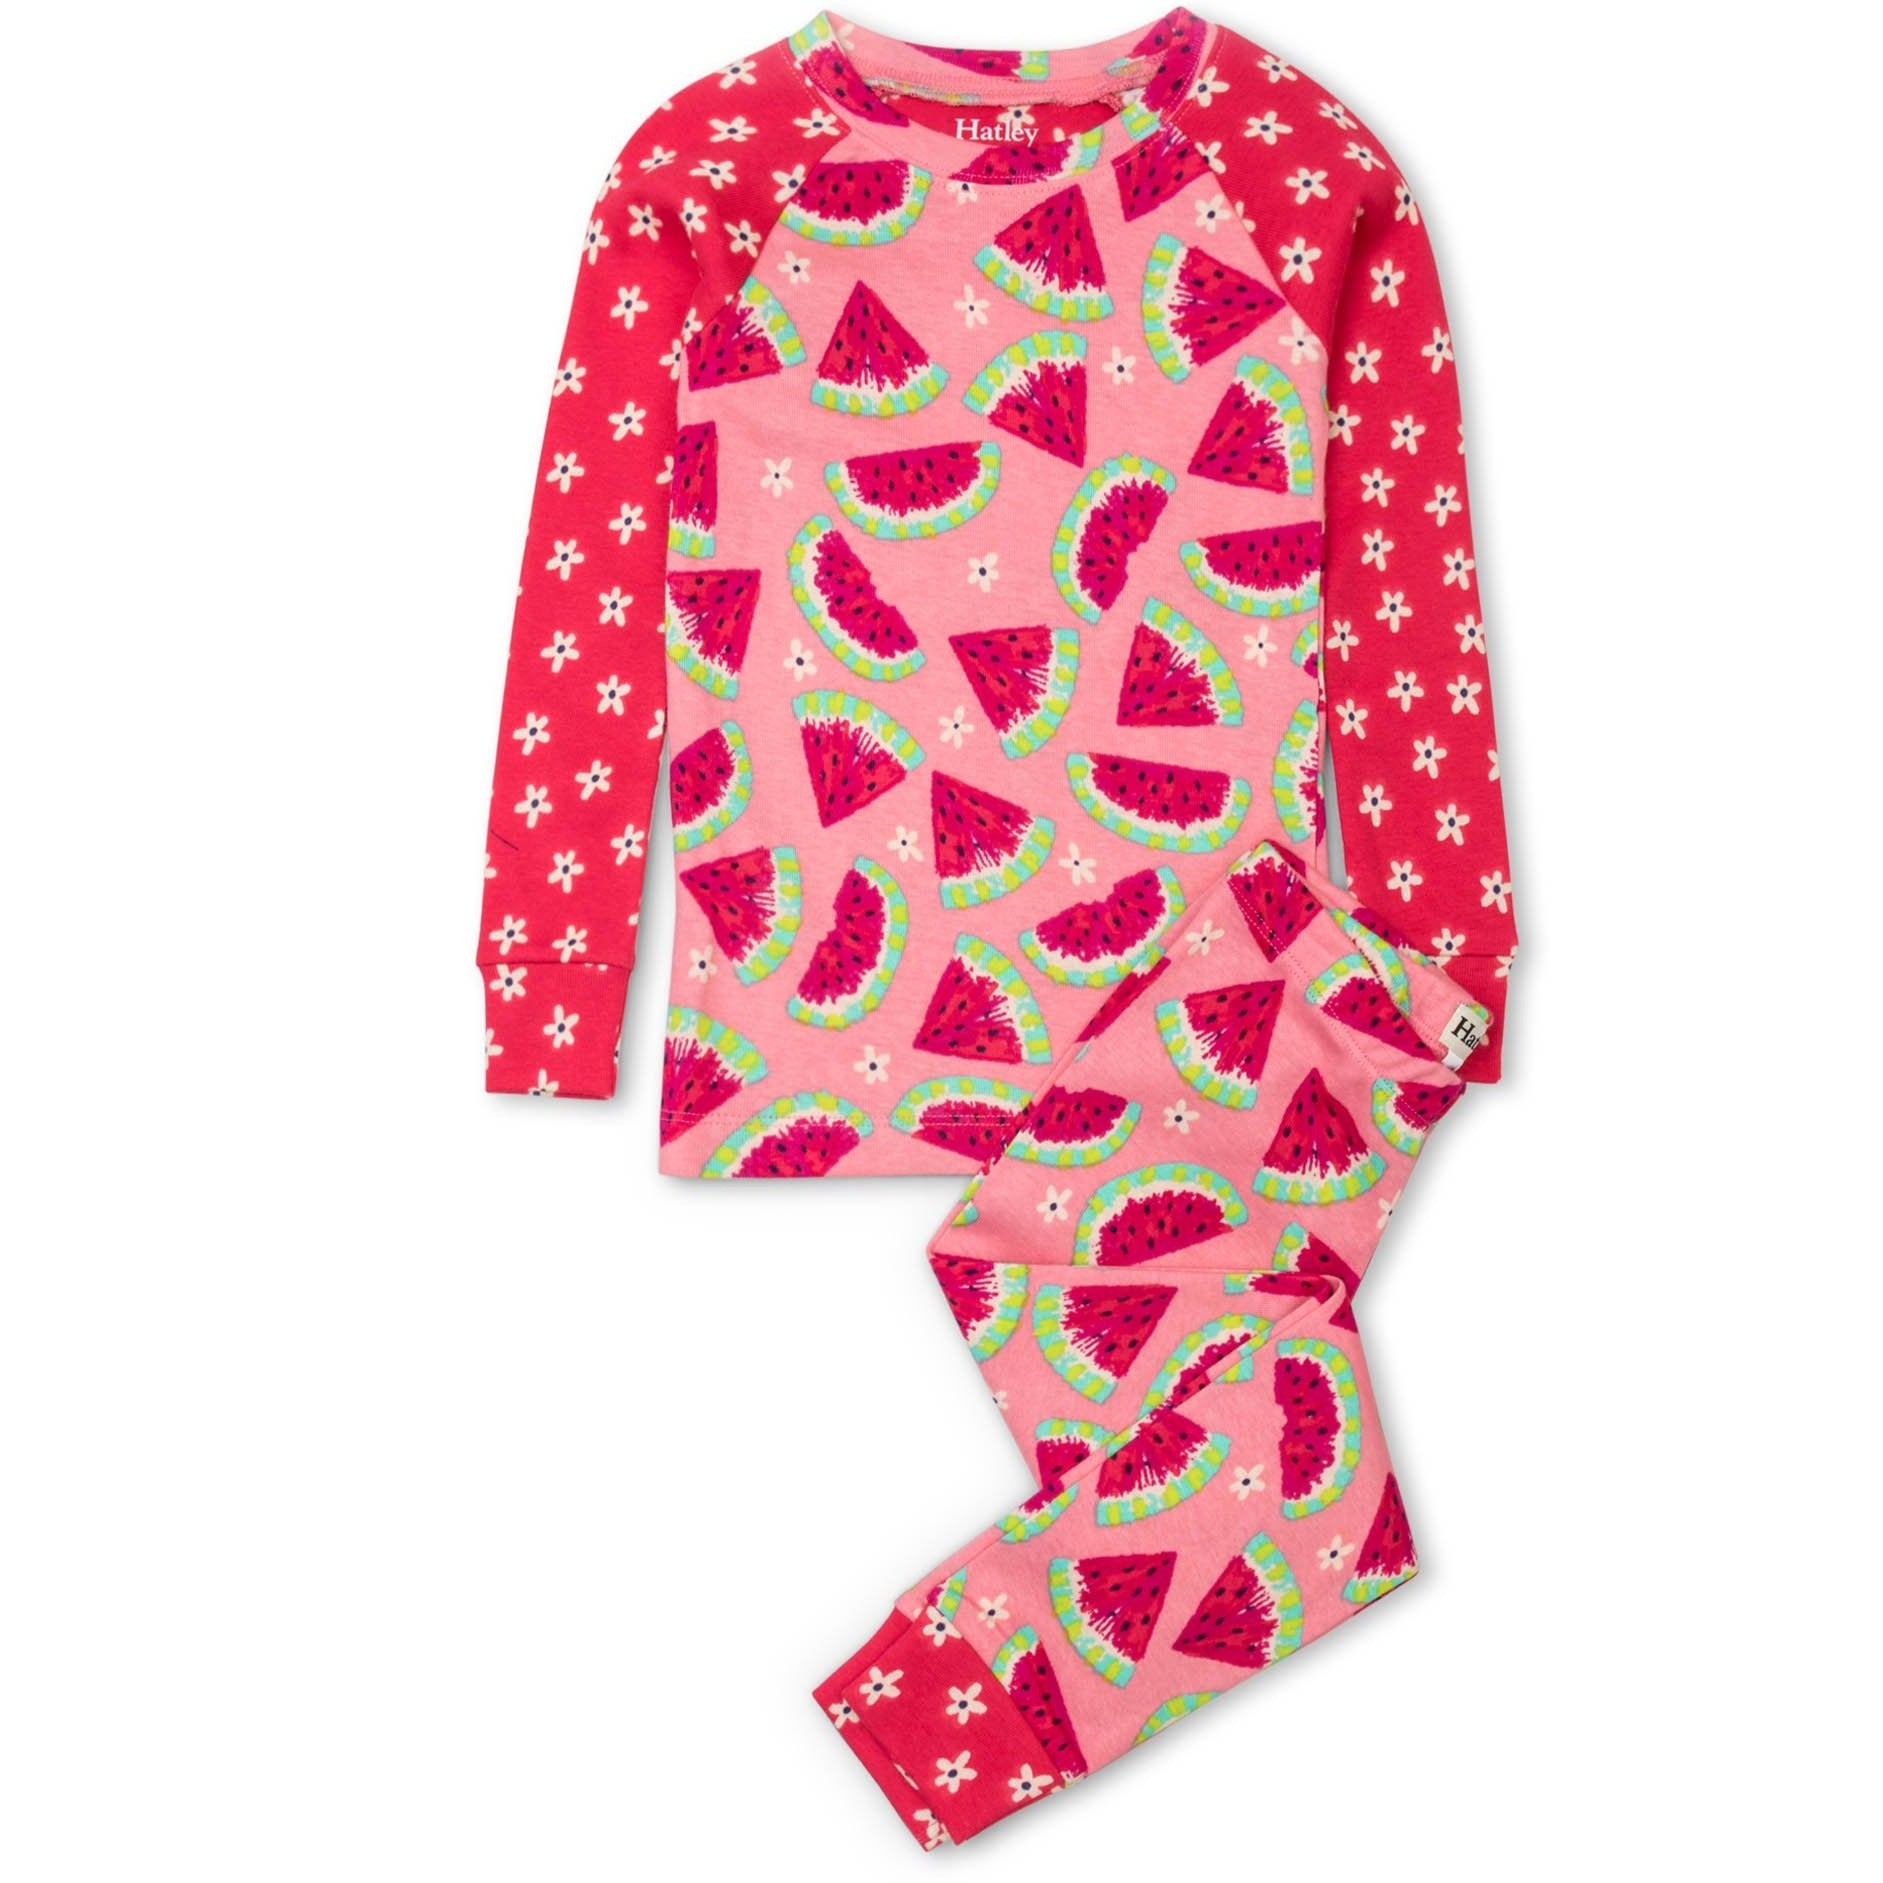 L/S Pyjamas | Watermelon Slices